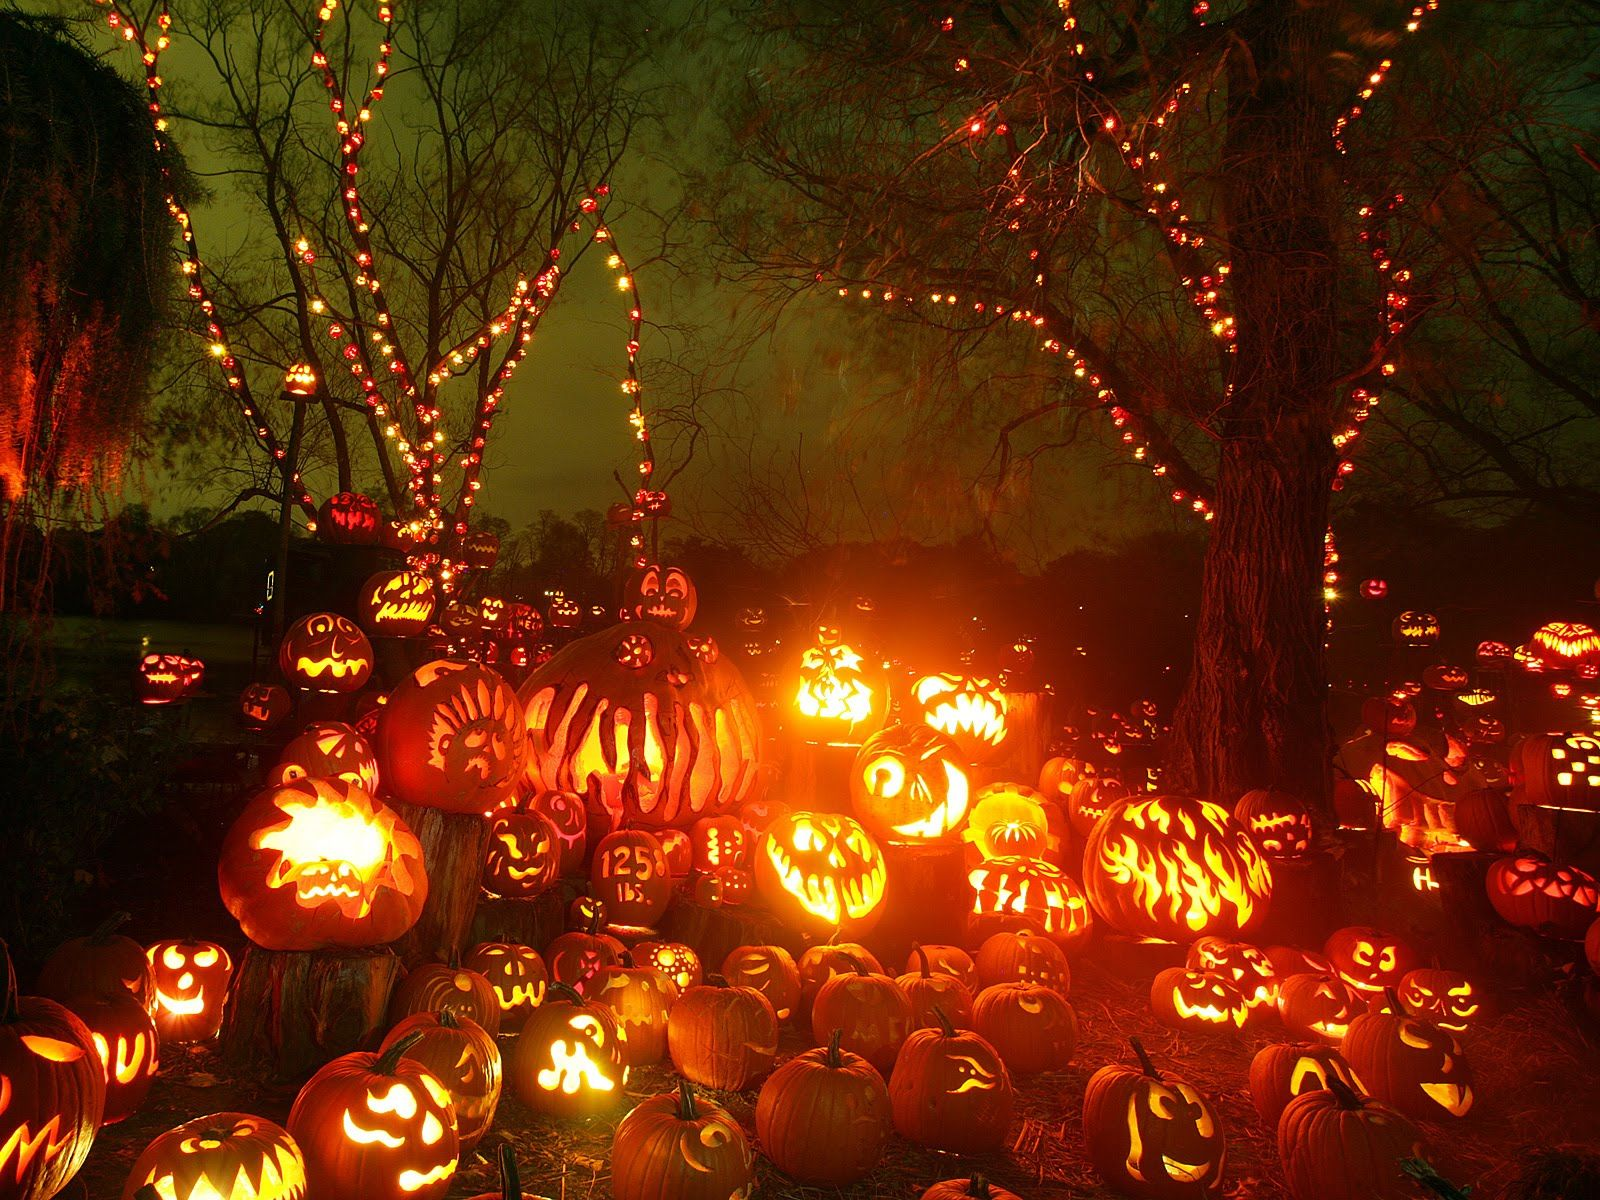 Halloween computer wallpapers desktop backgrounds - Desktop wallpaper 1600x1200 ...